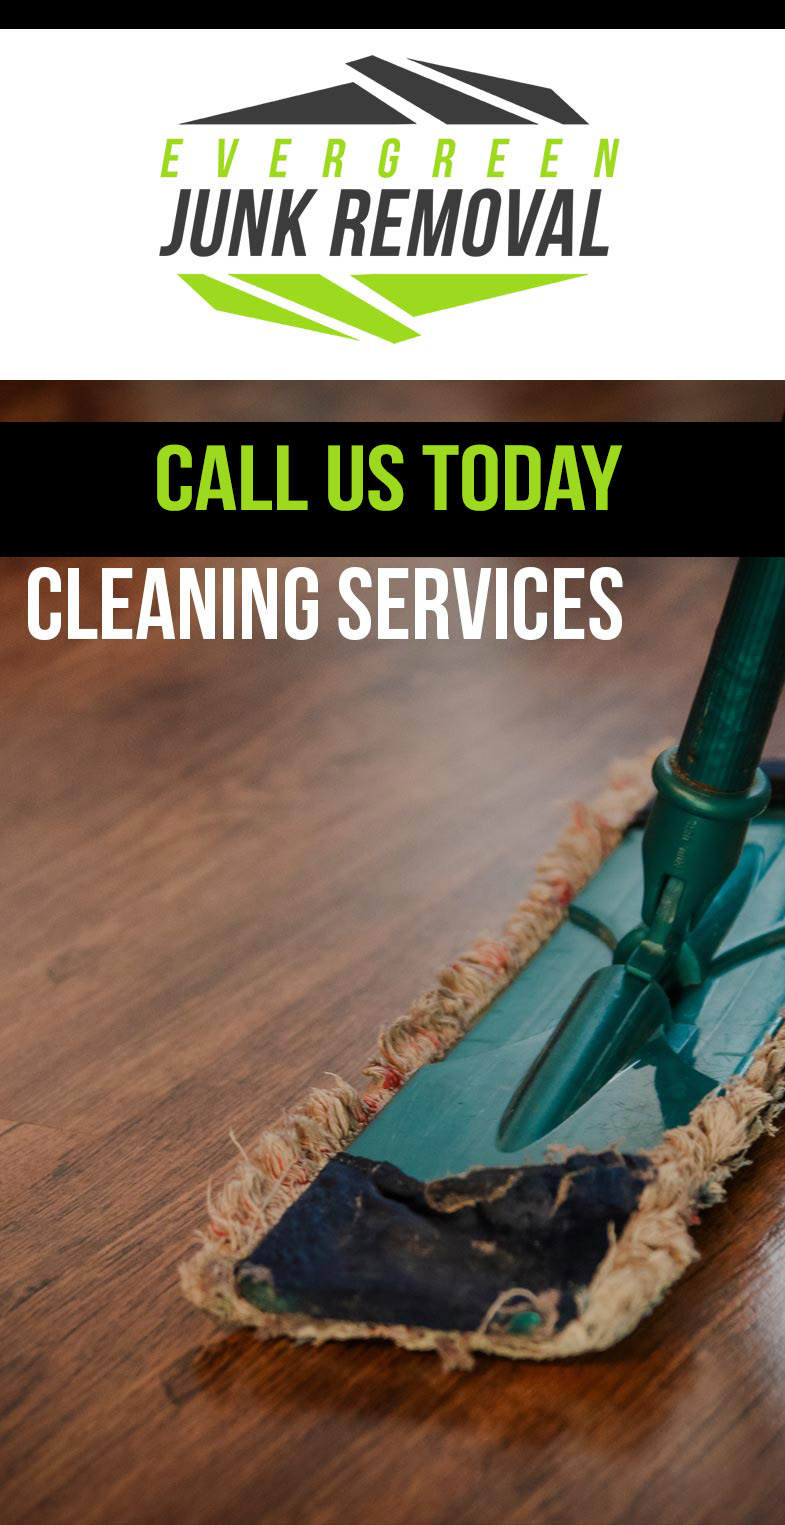 Greenacres Office Cleaning Services